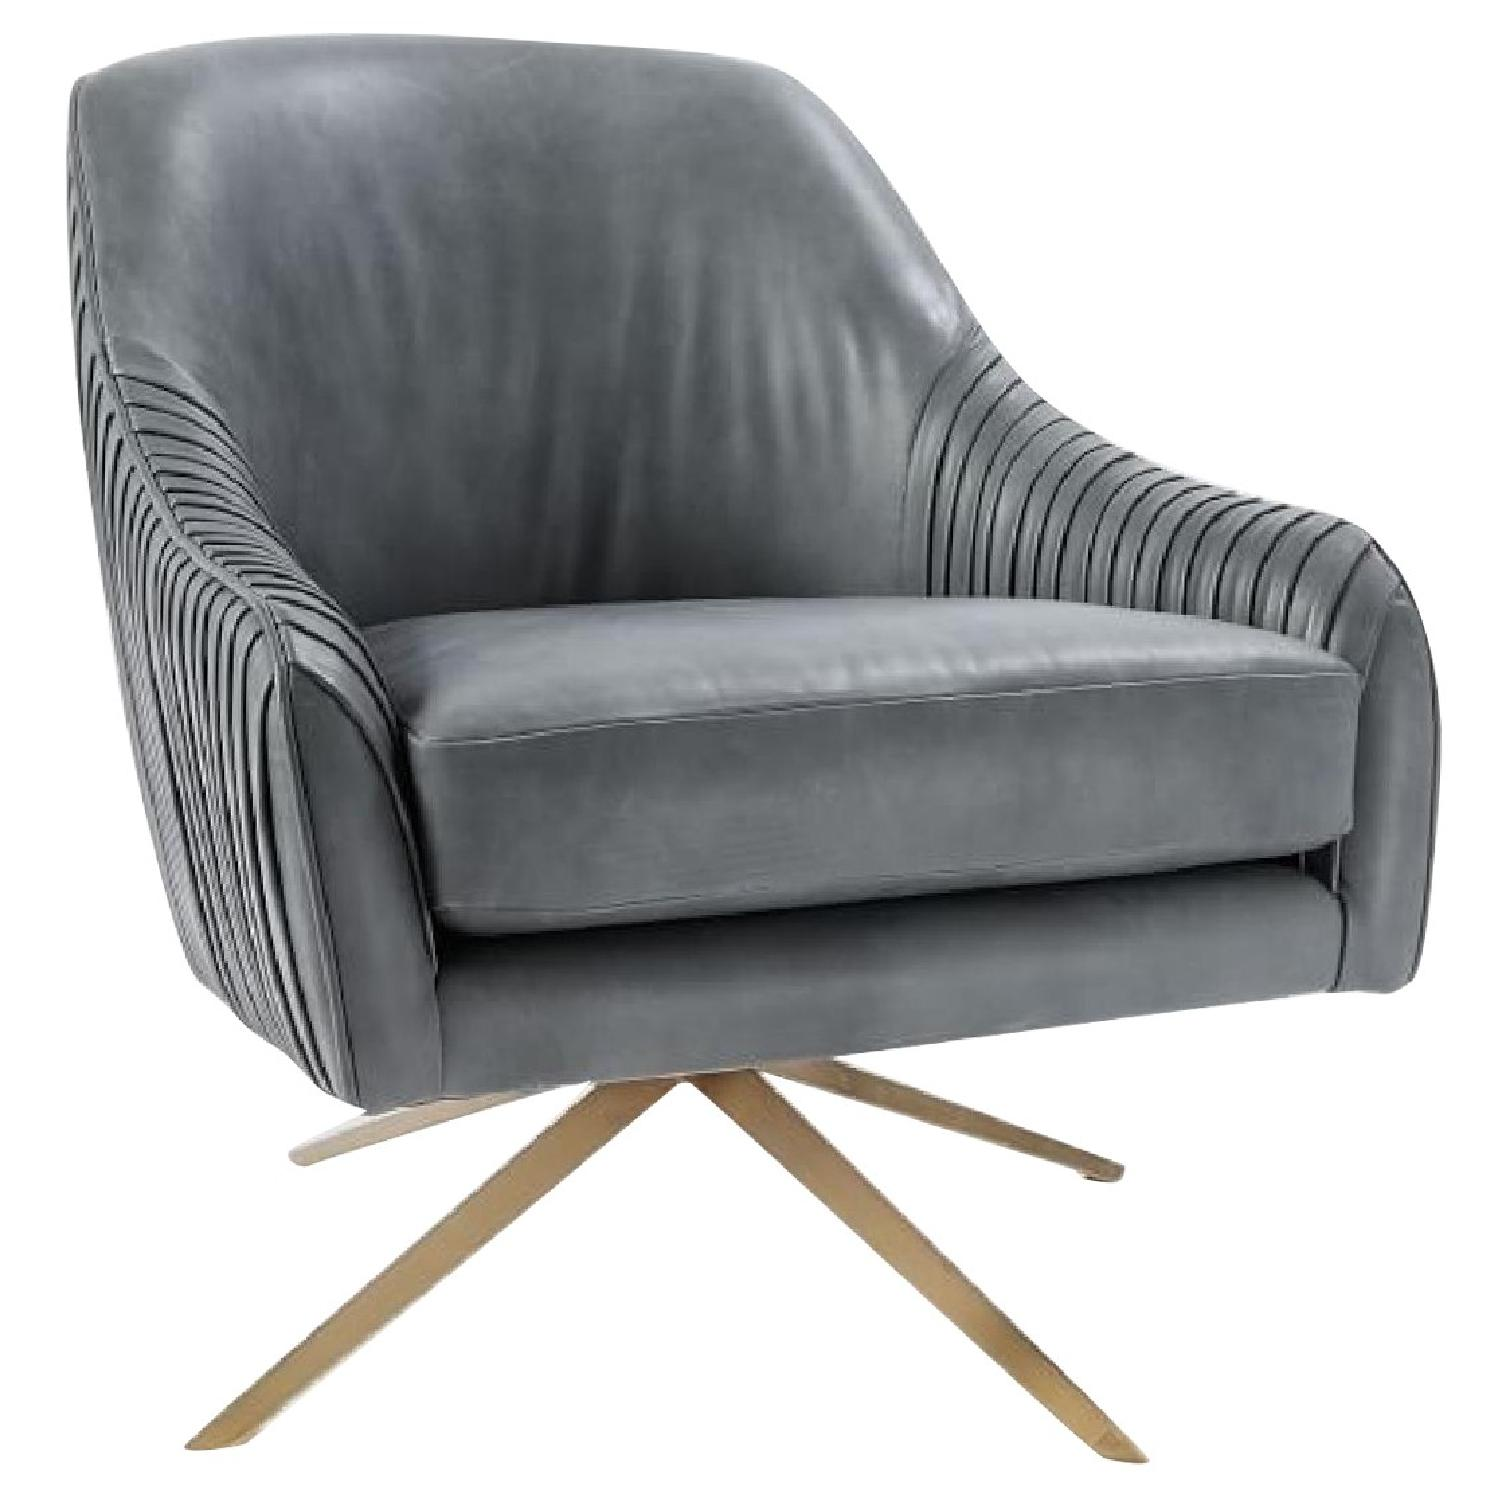 West Elm By Roar + Rabbit Swivel Chair In Leather ...